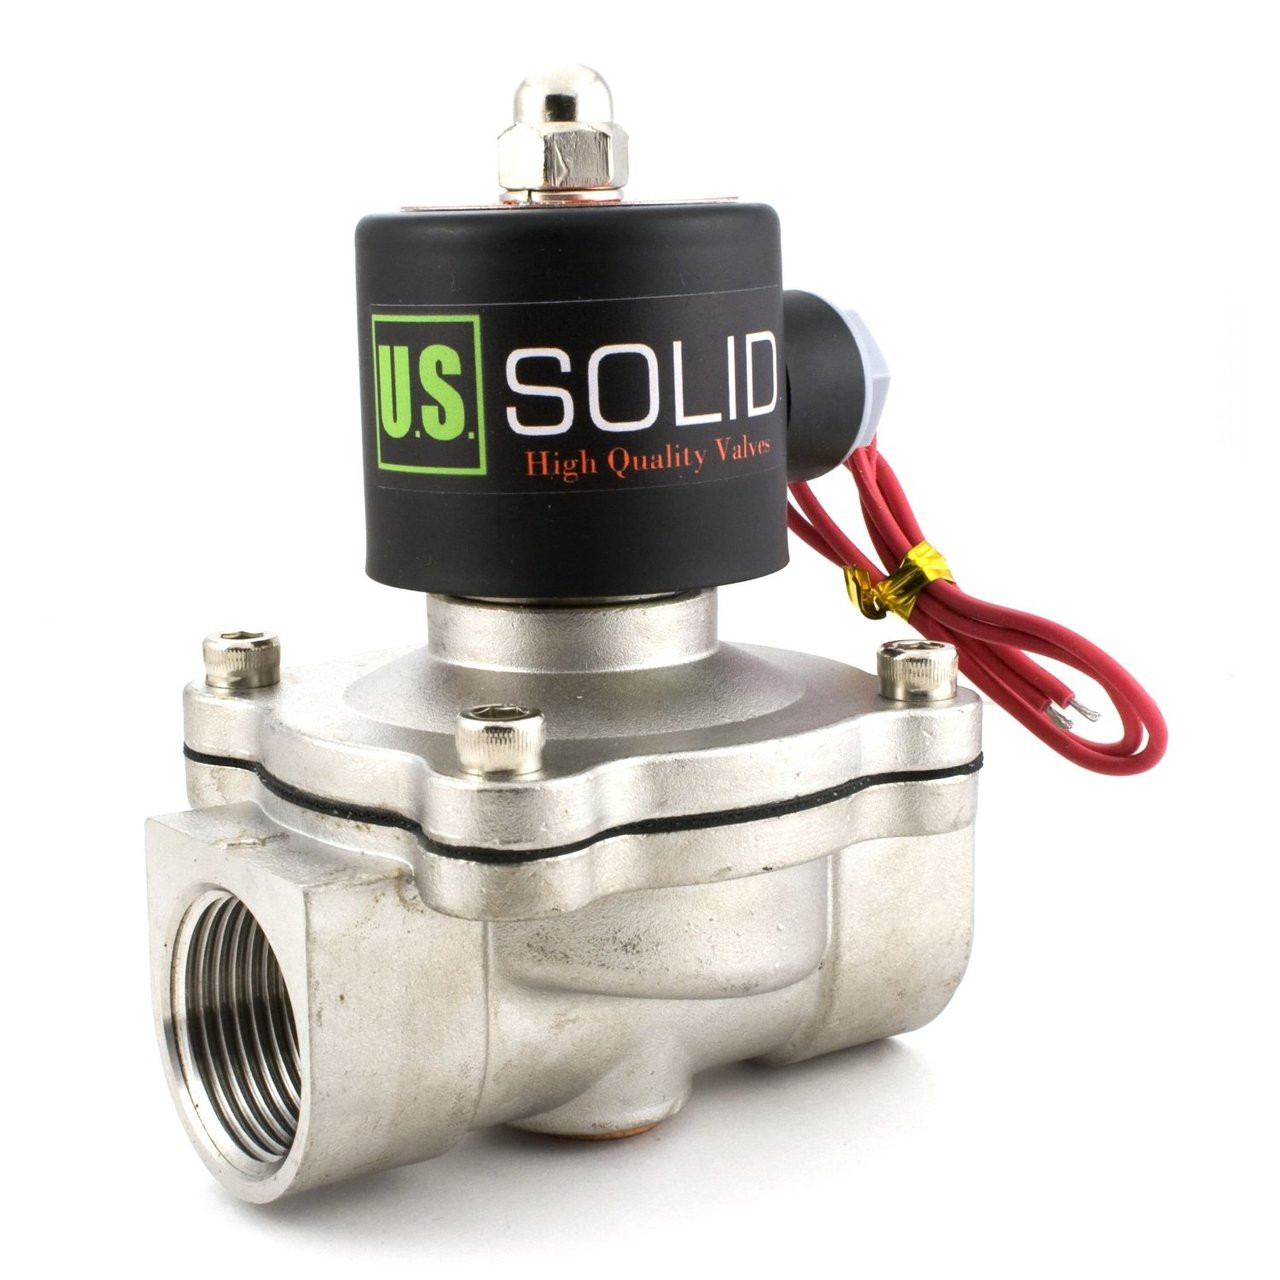 "USSOLID Electric Solenoid Valve- 1"" 12V DC Solenoid Valve Stainless Steel Body Normally Closed, VITON SEAL"